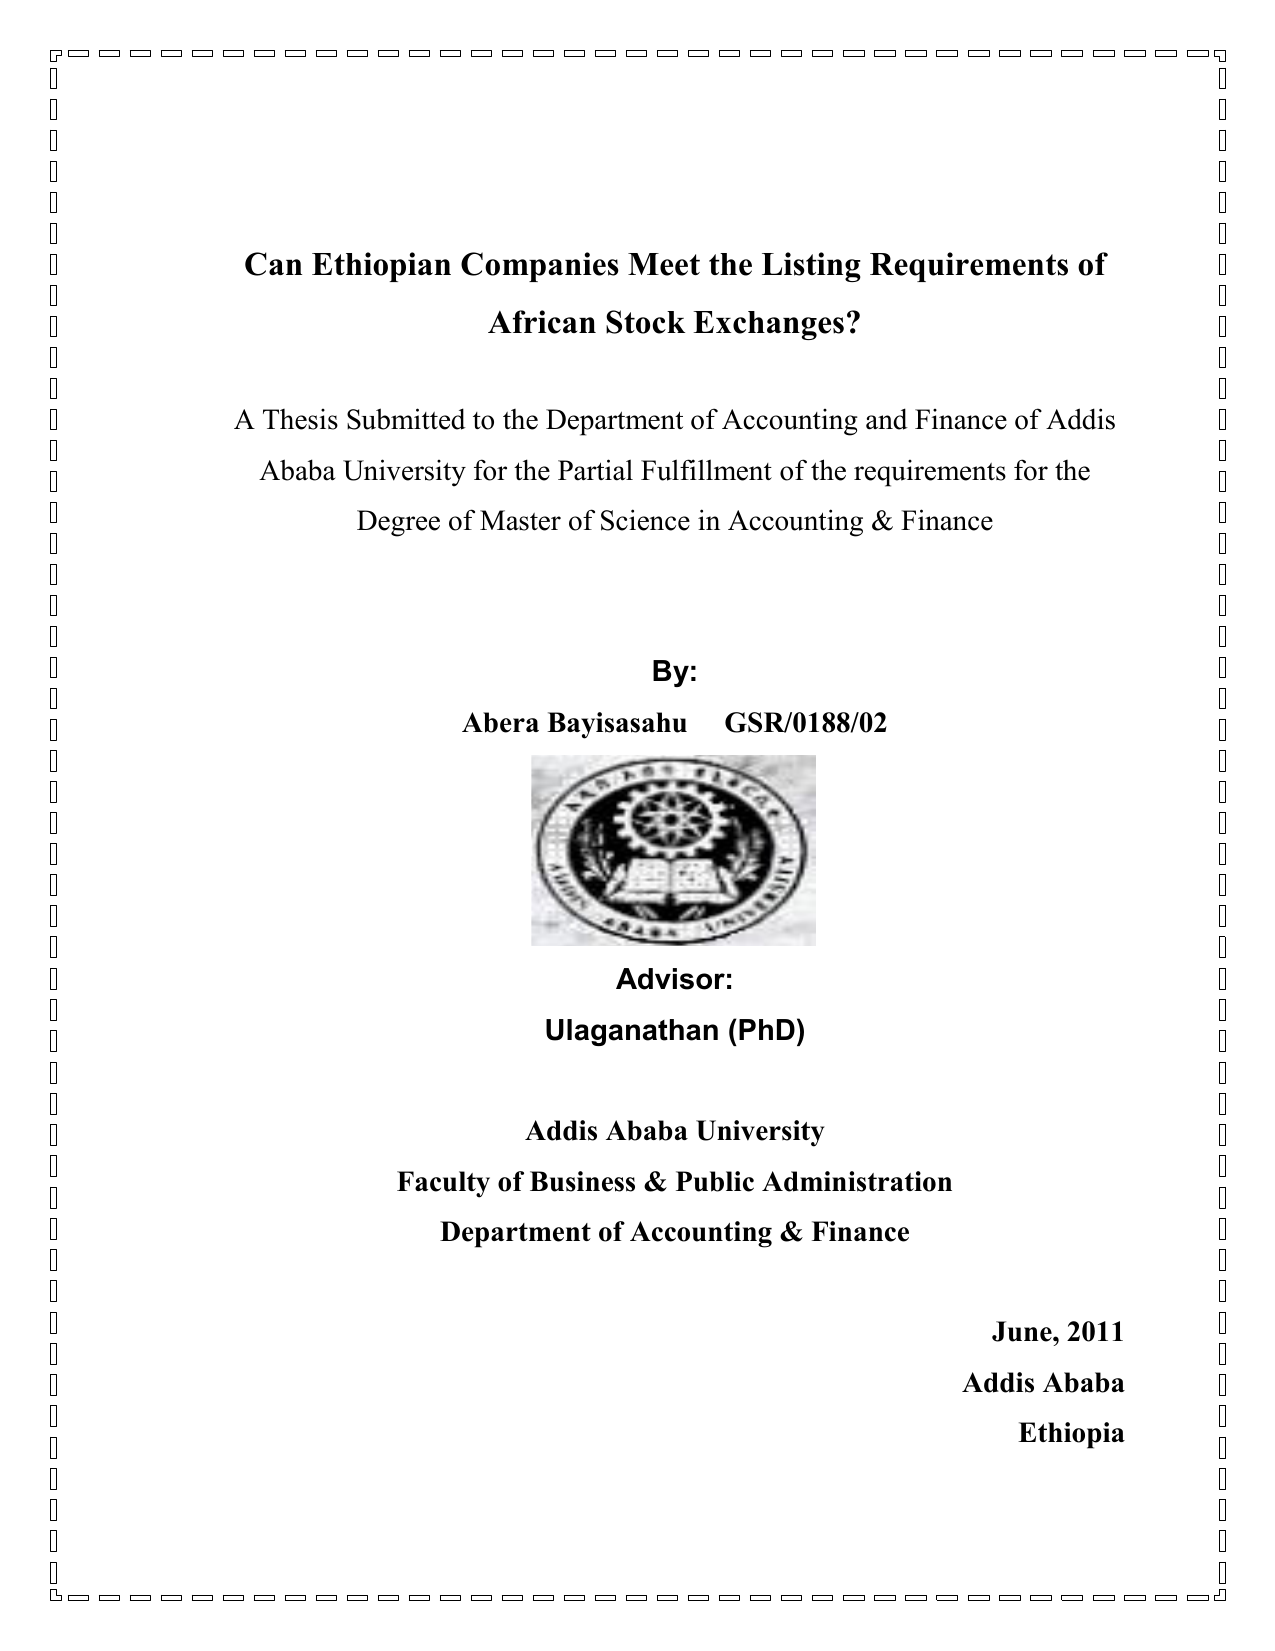 Can Ethiopian Companies Meet the Listing Requirements of African